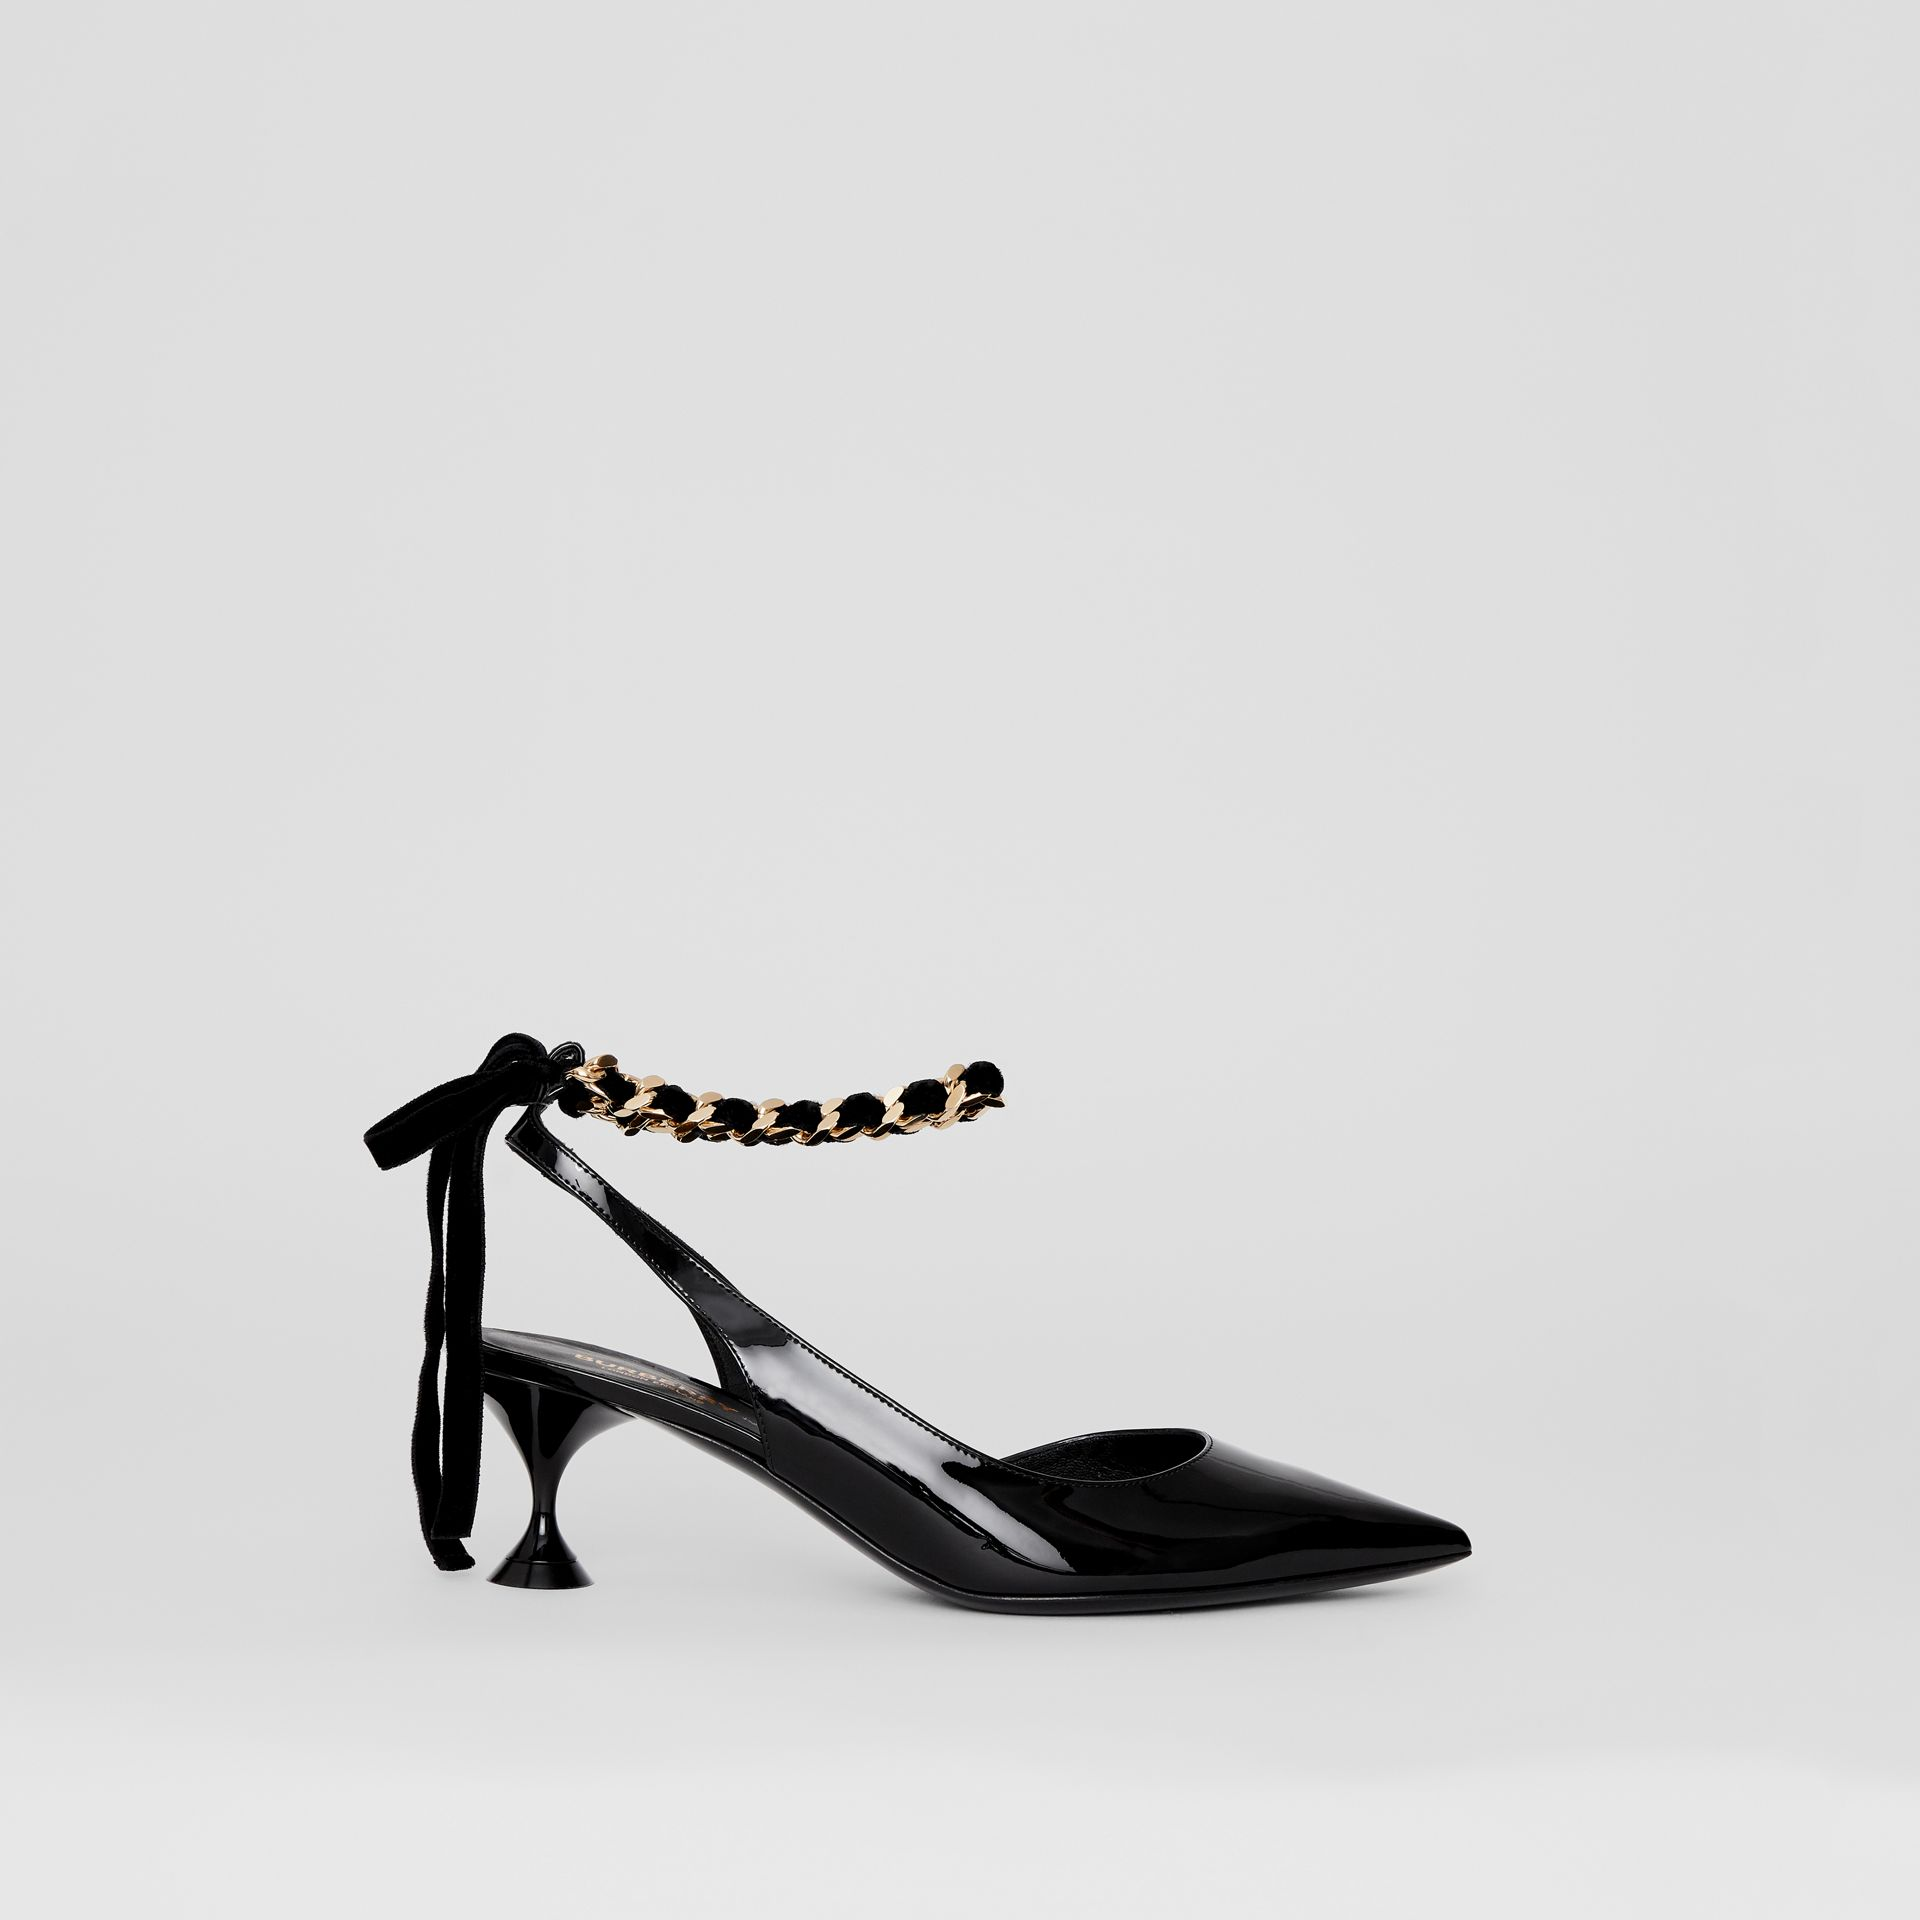 Chain Detail Leather Slingback Pumps in Black - Women | Burberry Hong Kong - gallery image 5